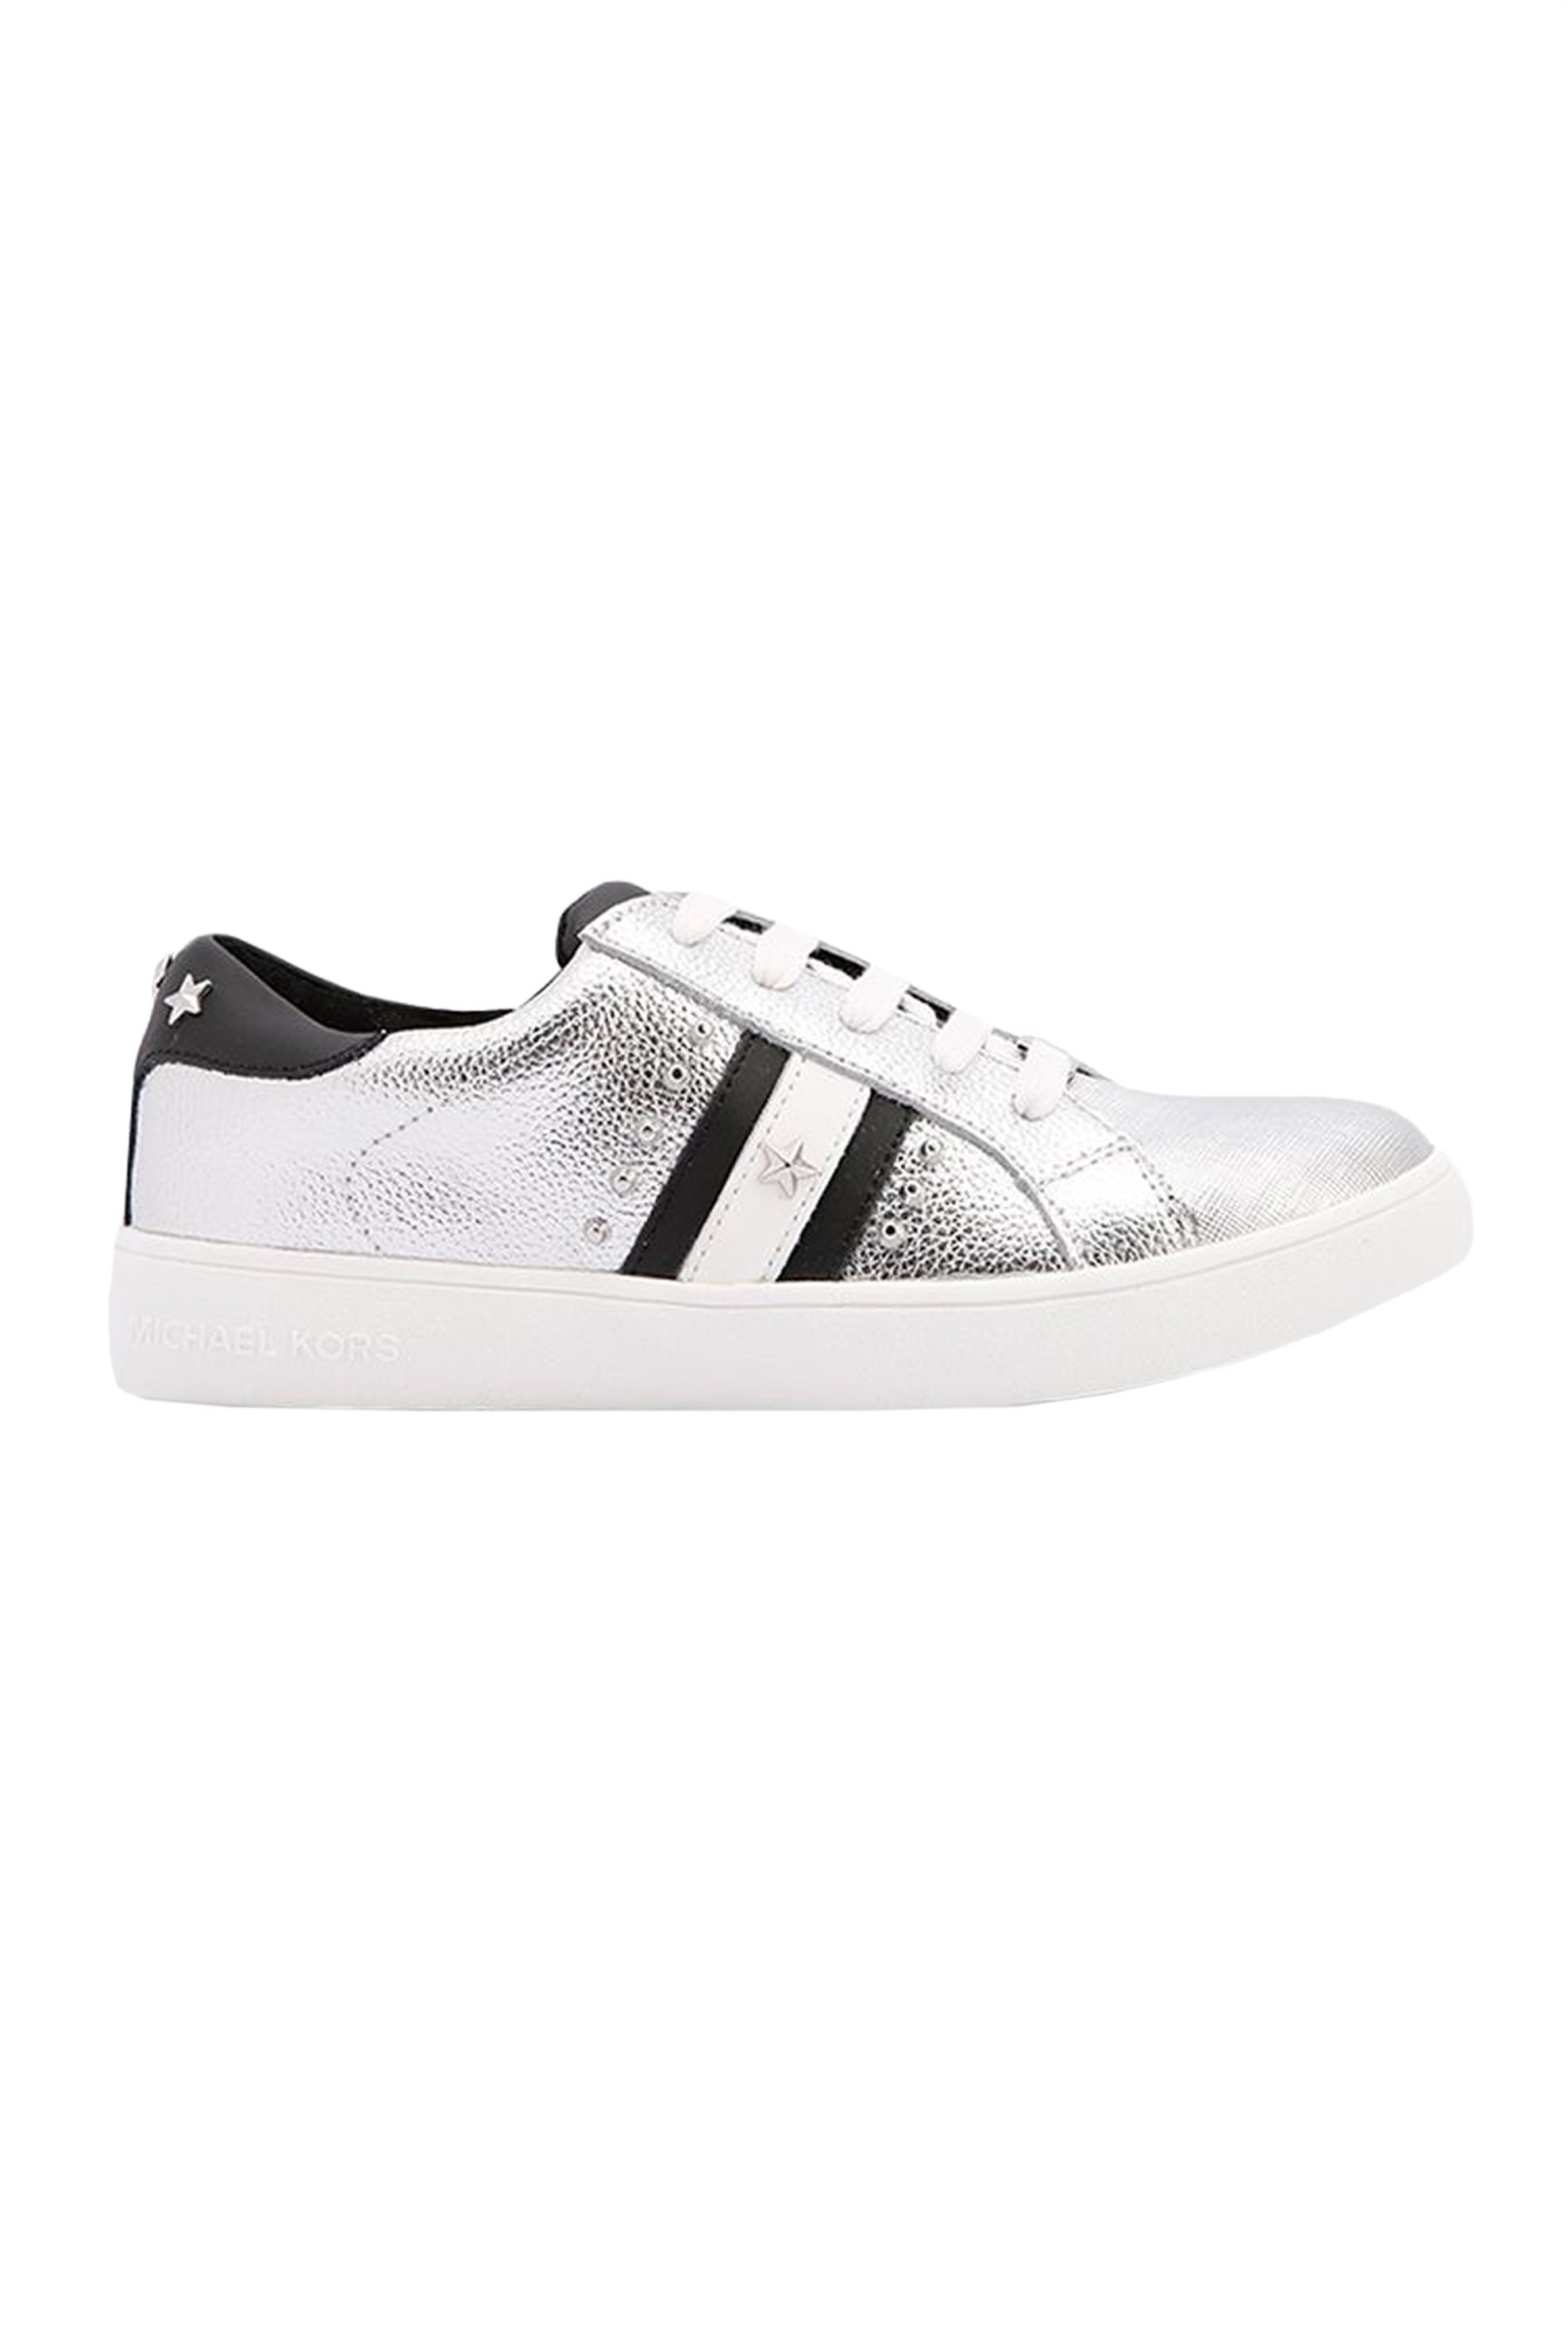 2a977c255a Notos Michael Kors παιδικά sneakers με αστέρια Zia Ivy Starry – ZIA IVI  STARRY – Ασημί